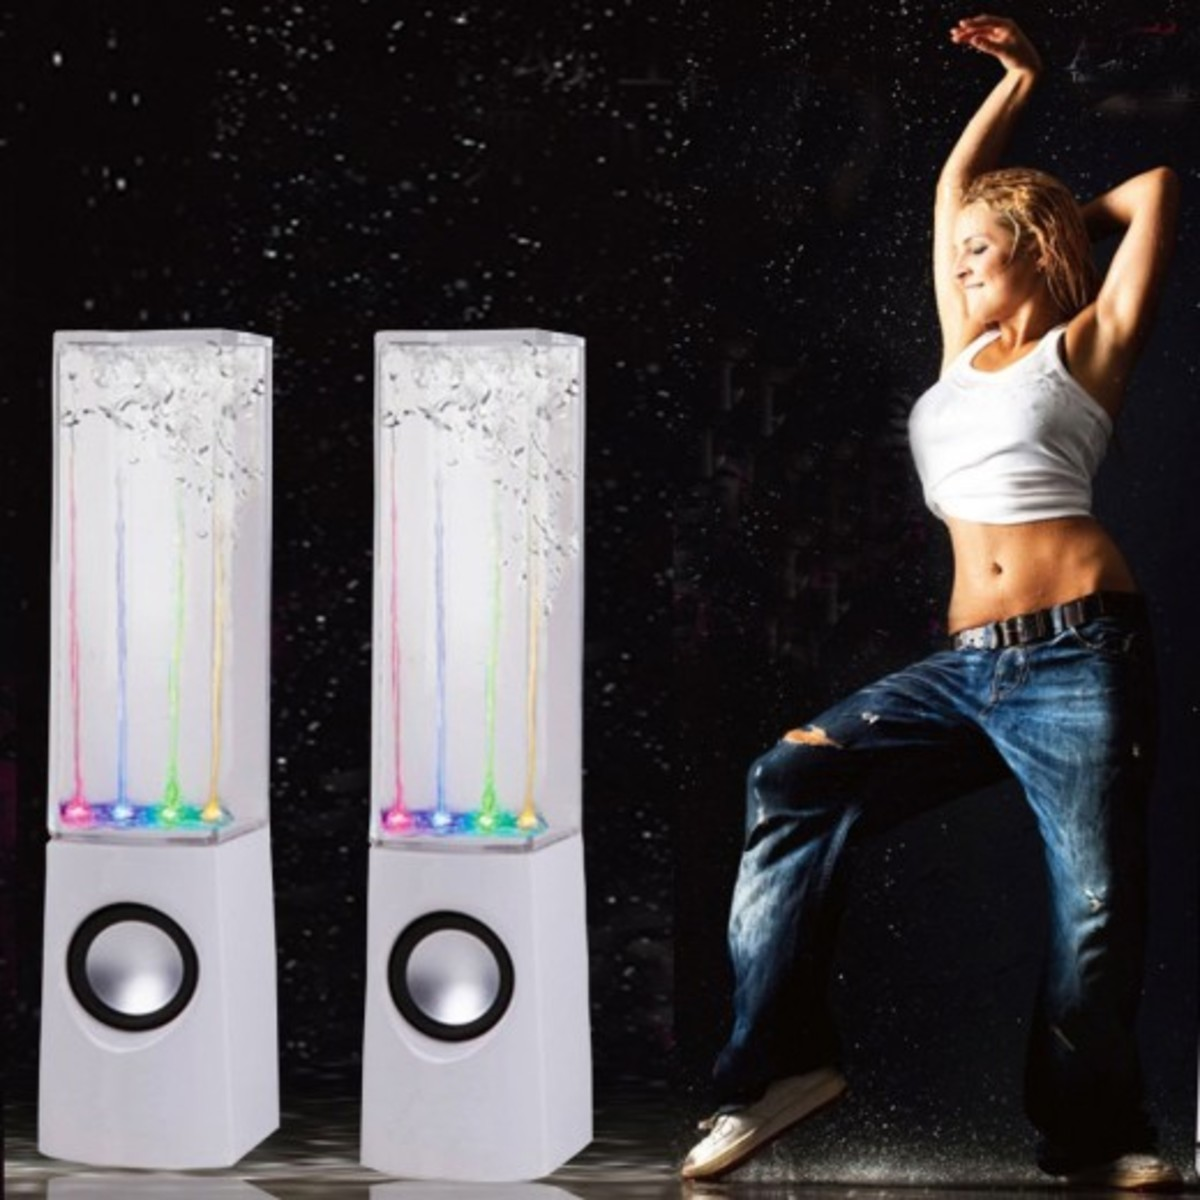 Water Fountain Speakers Dancing LED Lights.  These look and sound awesome (take my word for it) and they can be used anywhere that there is access to power and a USB connection, including a living room, bedroom, kitchen or wherever.